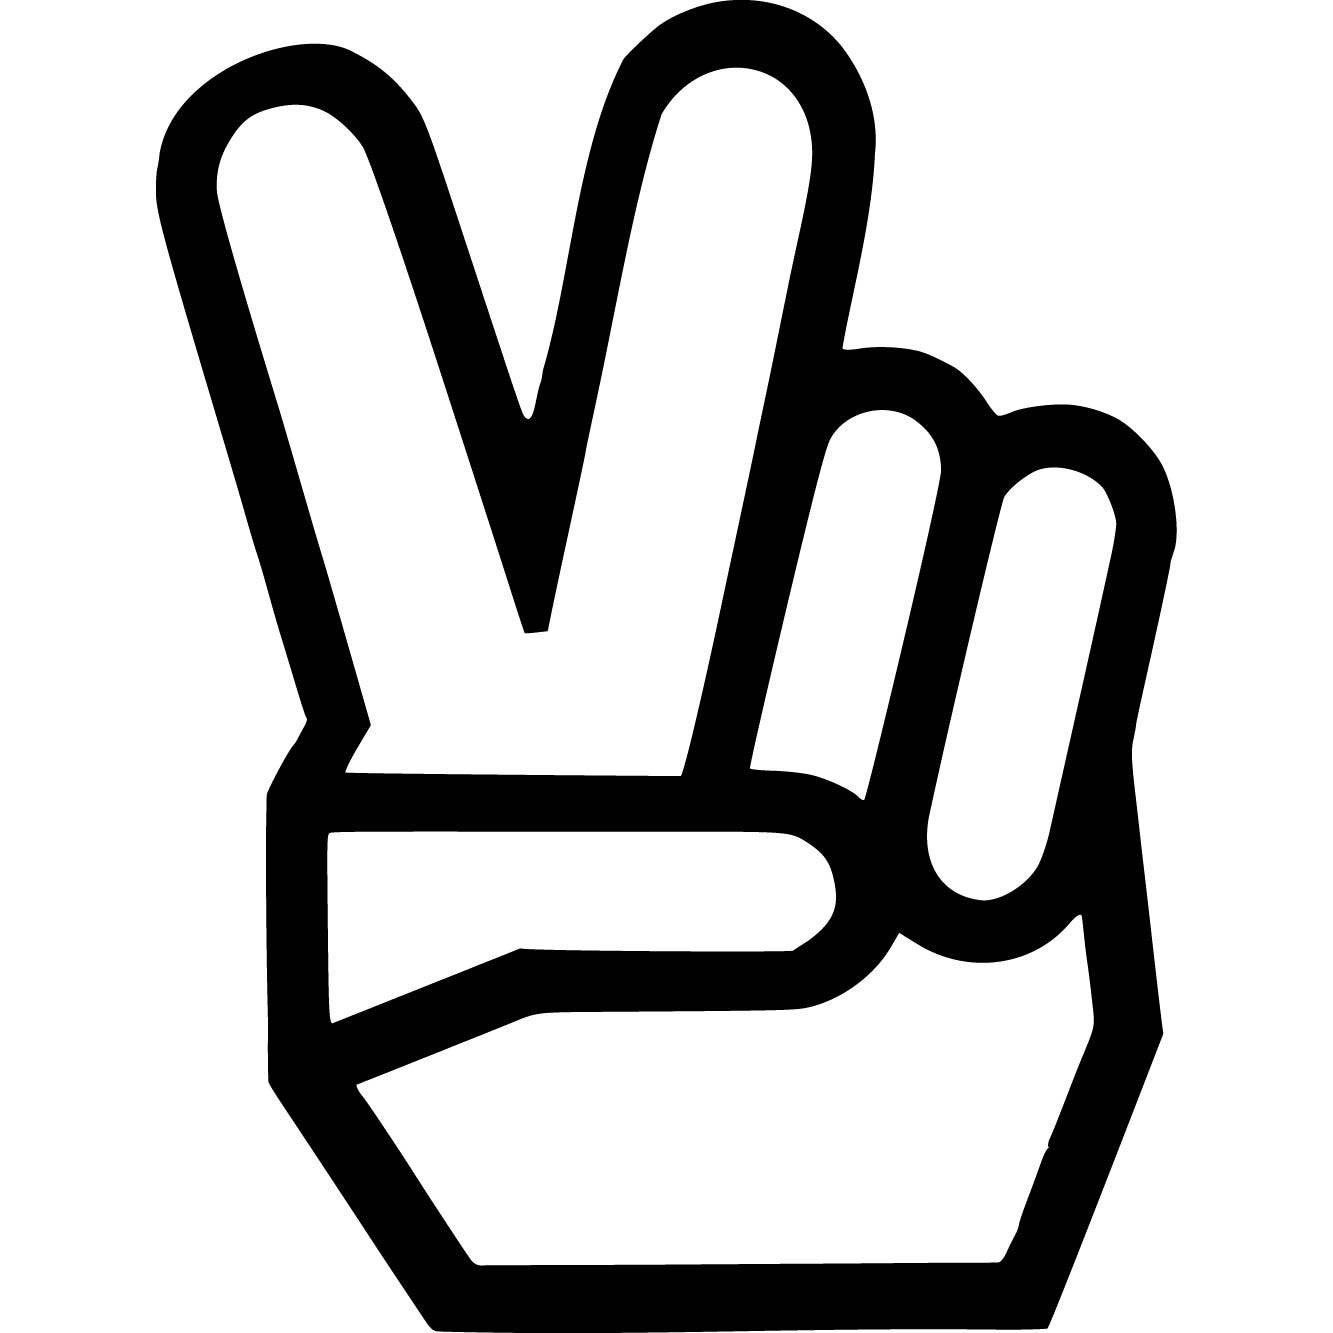 Peace Sign Fingers Wallpaper Peace Sign With Fingers hd